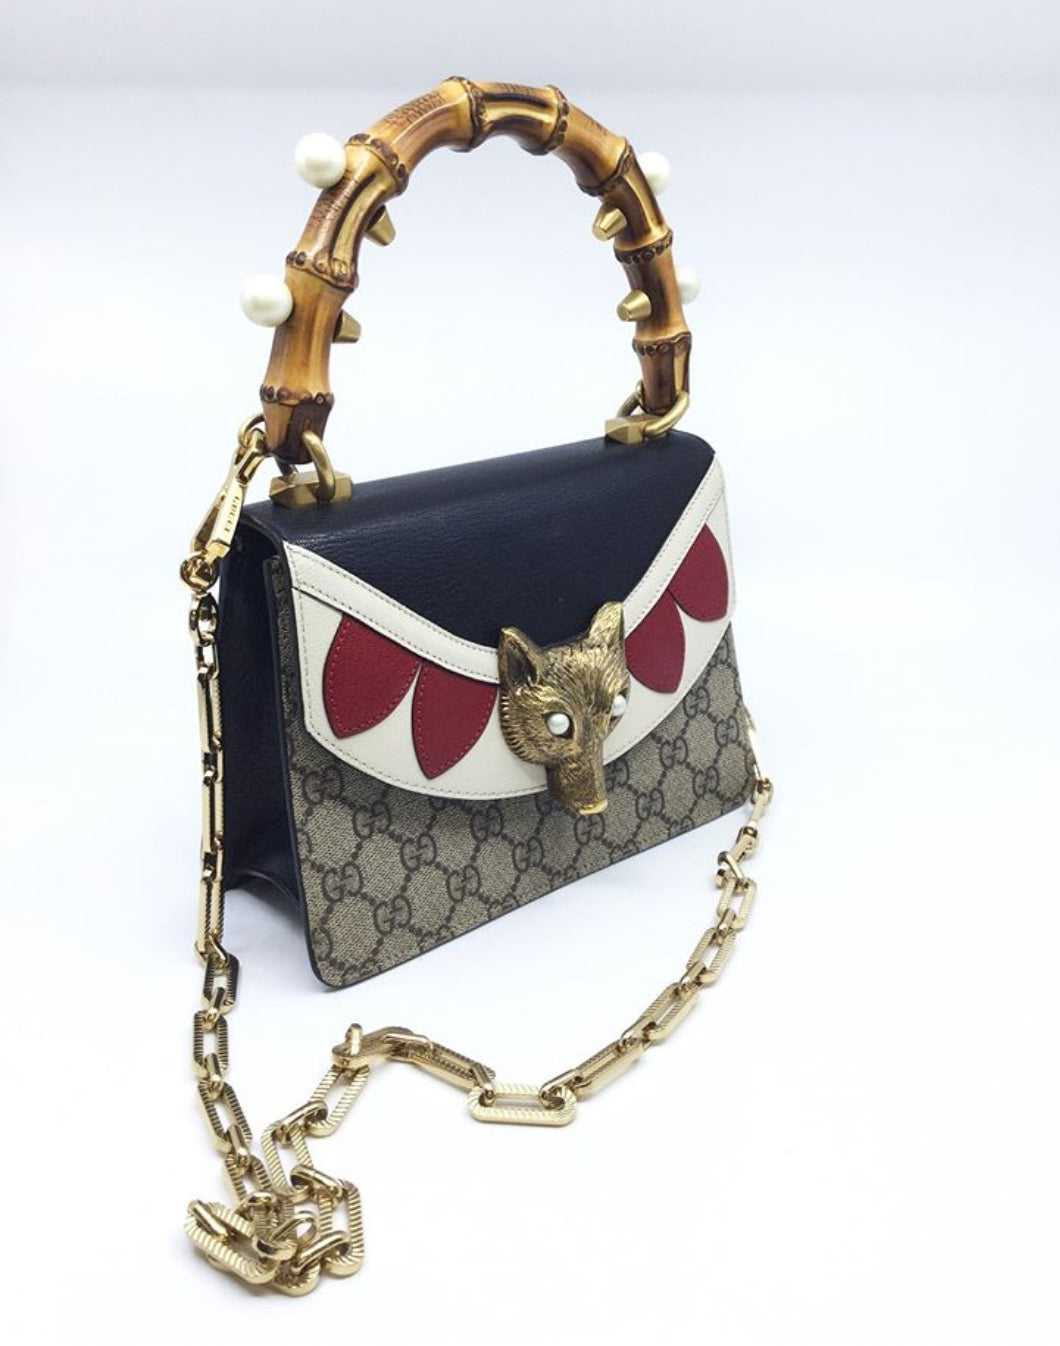 Gucci Mini Broche Top Bamboo Handle and Chain Bag